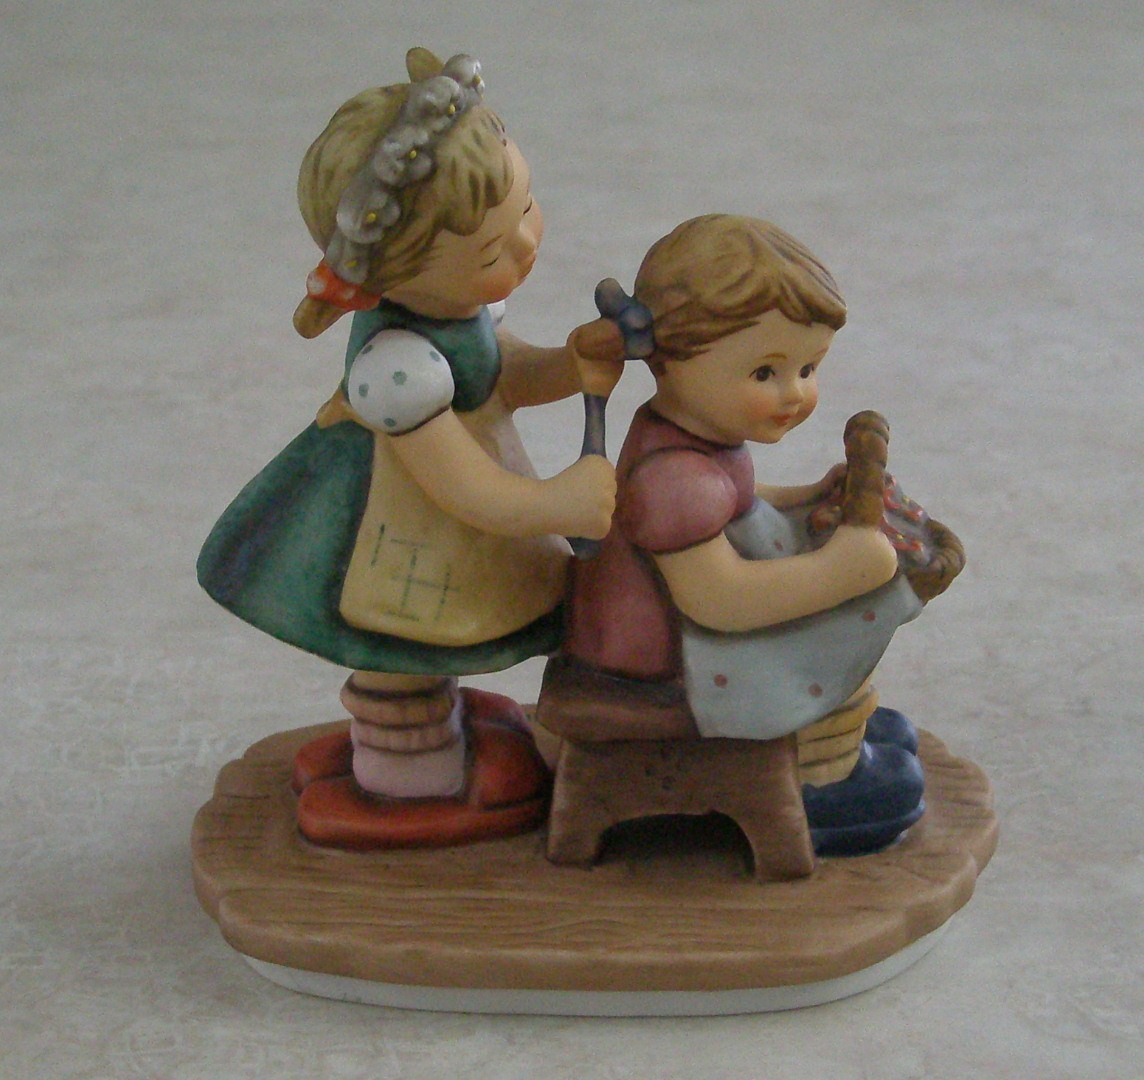 Goebel Berta Hummel Forever A Friend BH 65 1998 BH65 no Box